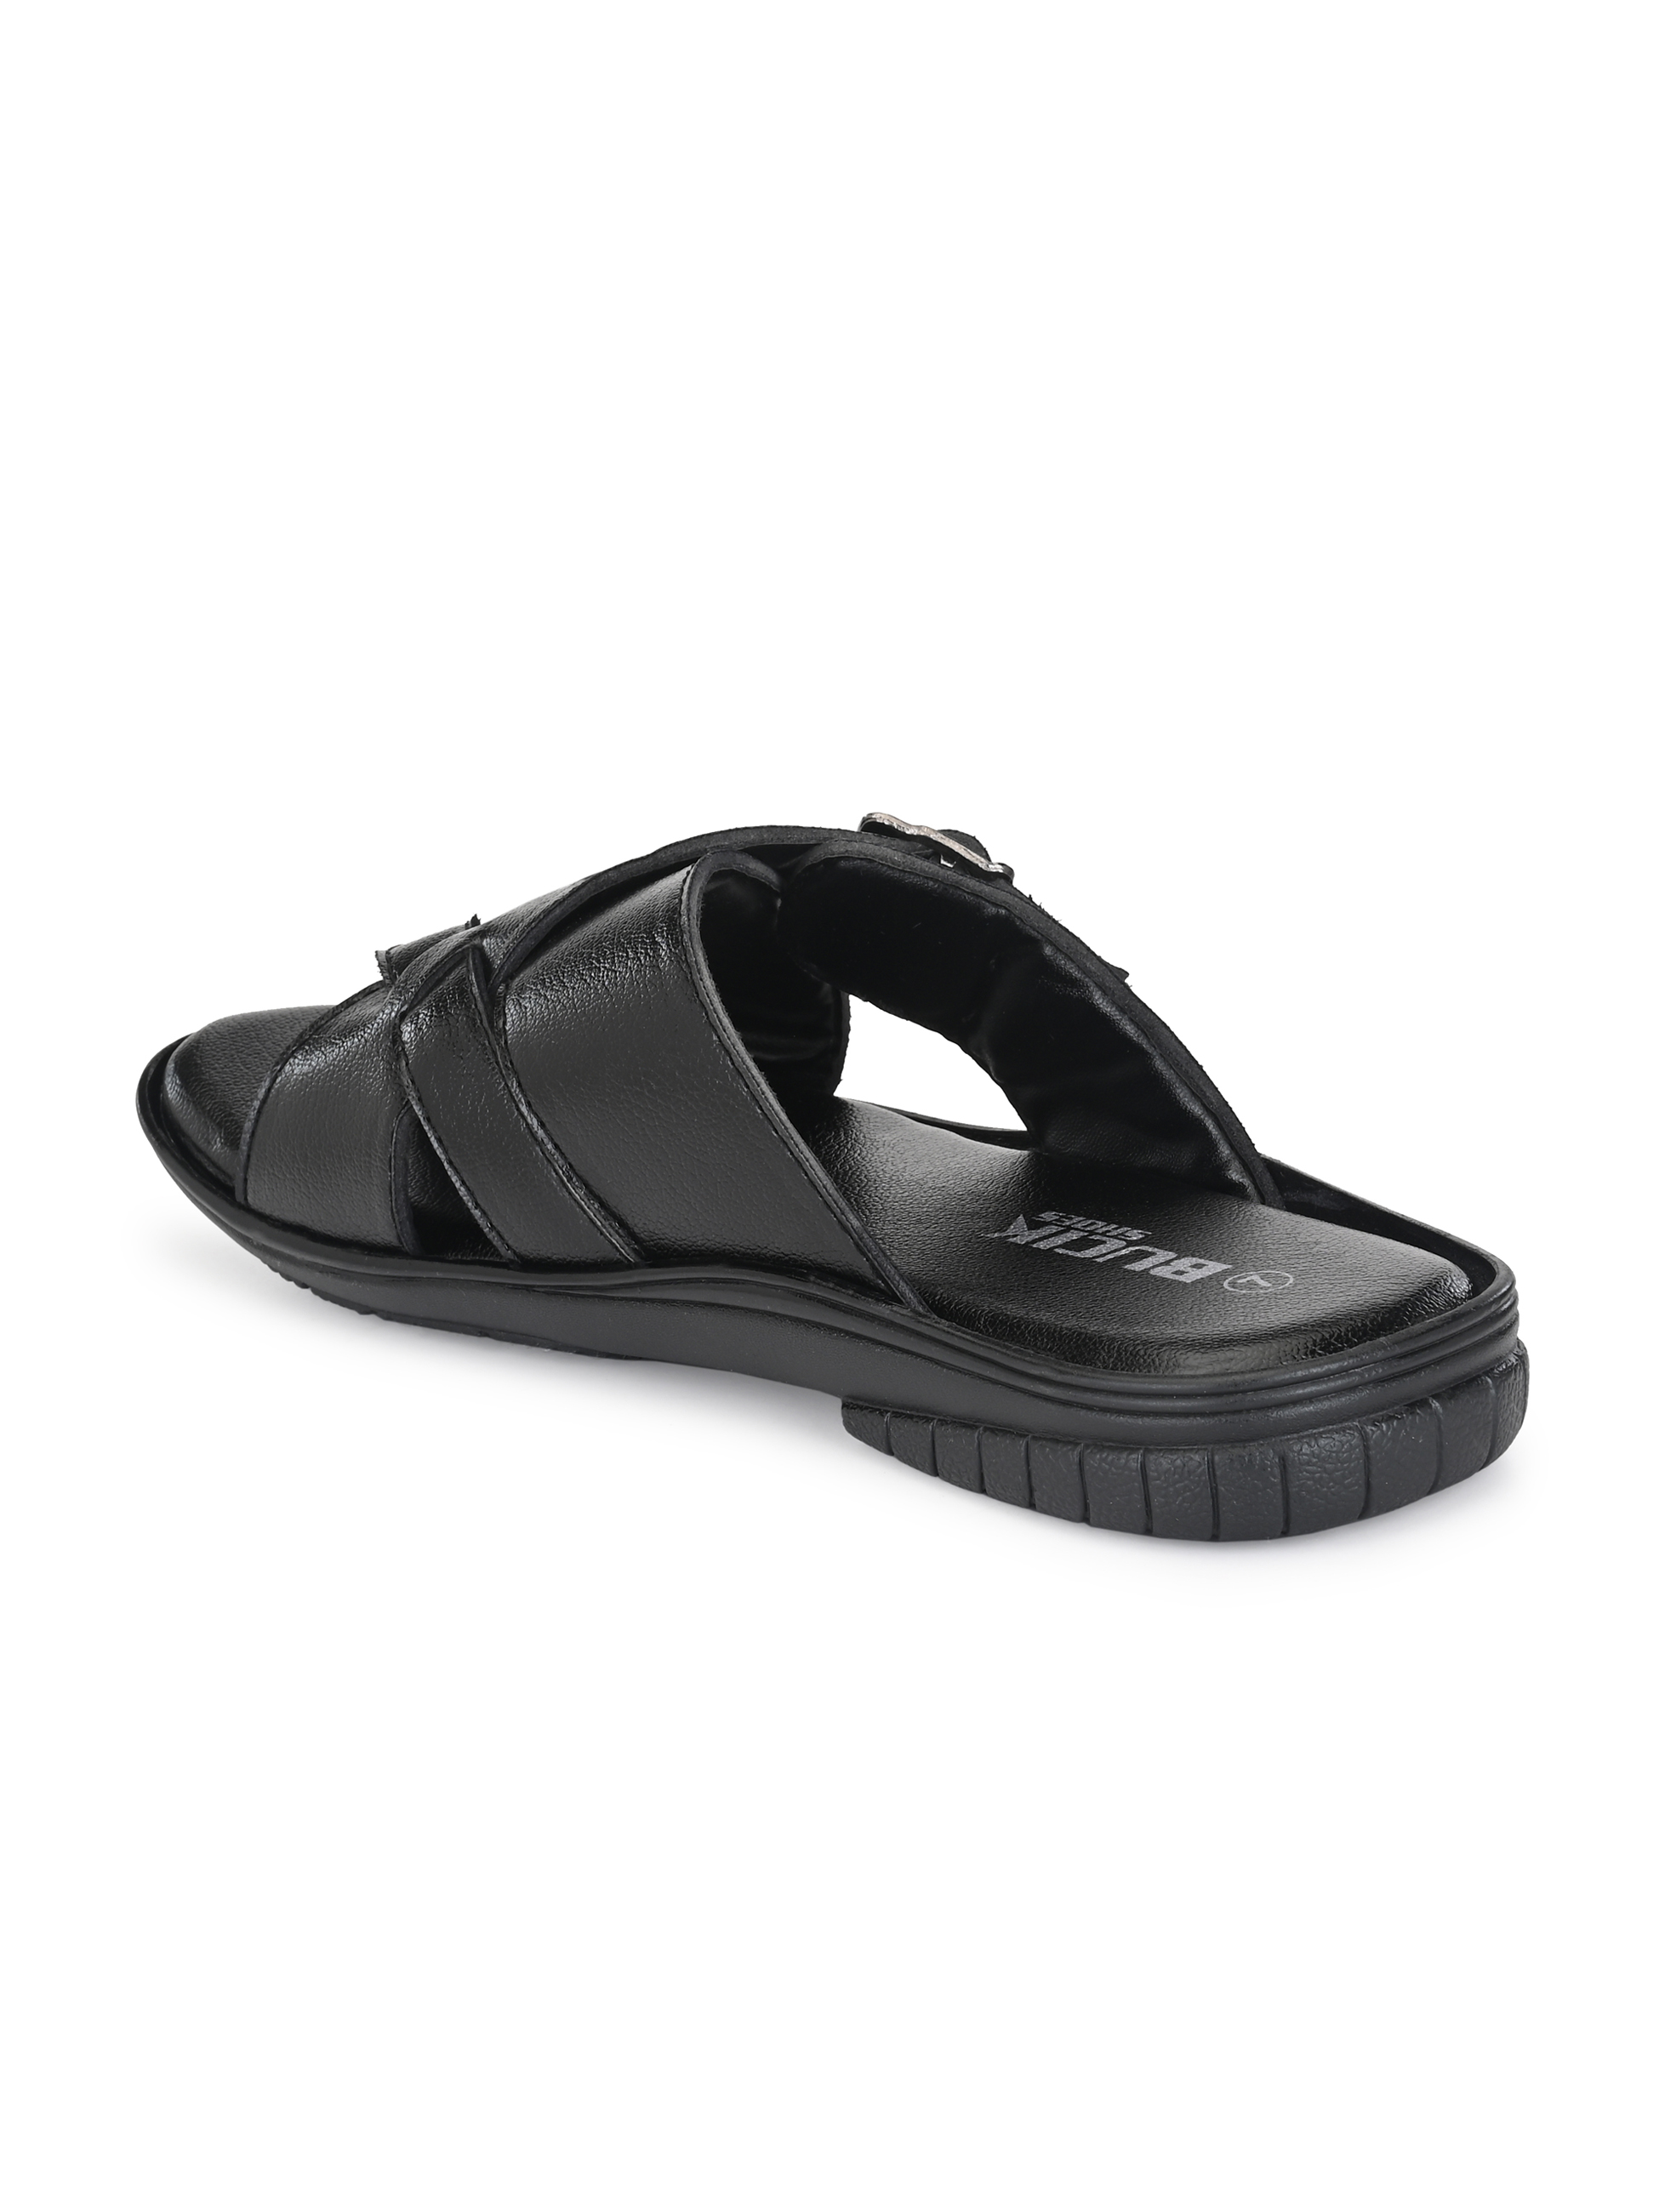 BUCIK MENS SYNTHETIC LEATHER BLACK SLEEPER BCK3021-BLACK (BLACK,6-10,8 PAIR)